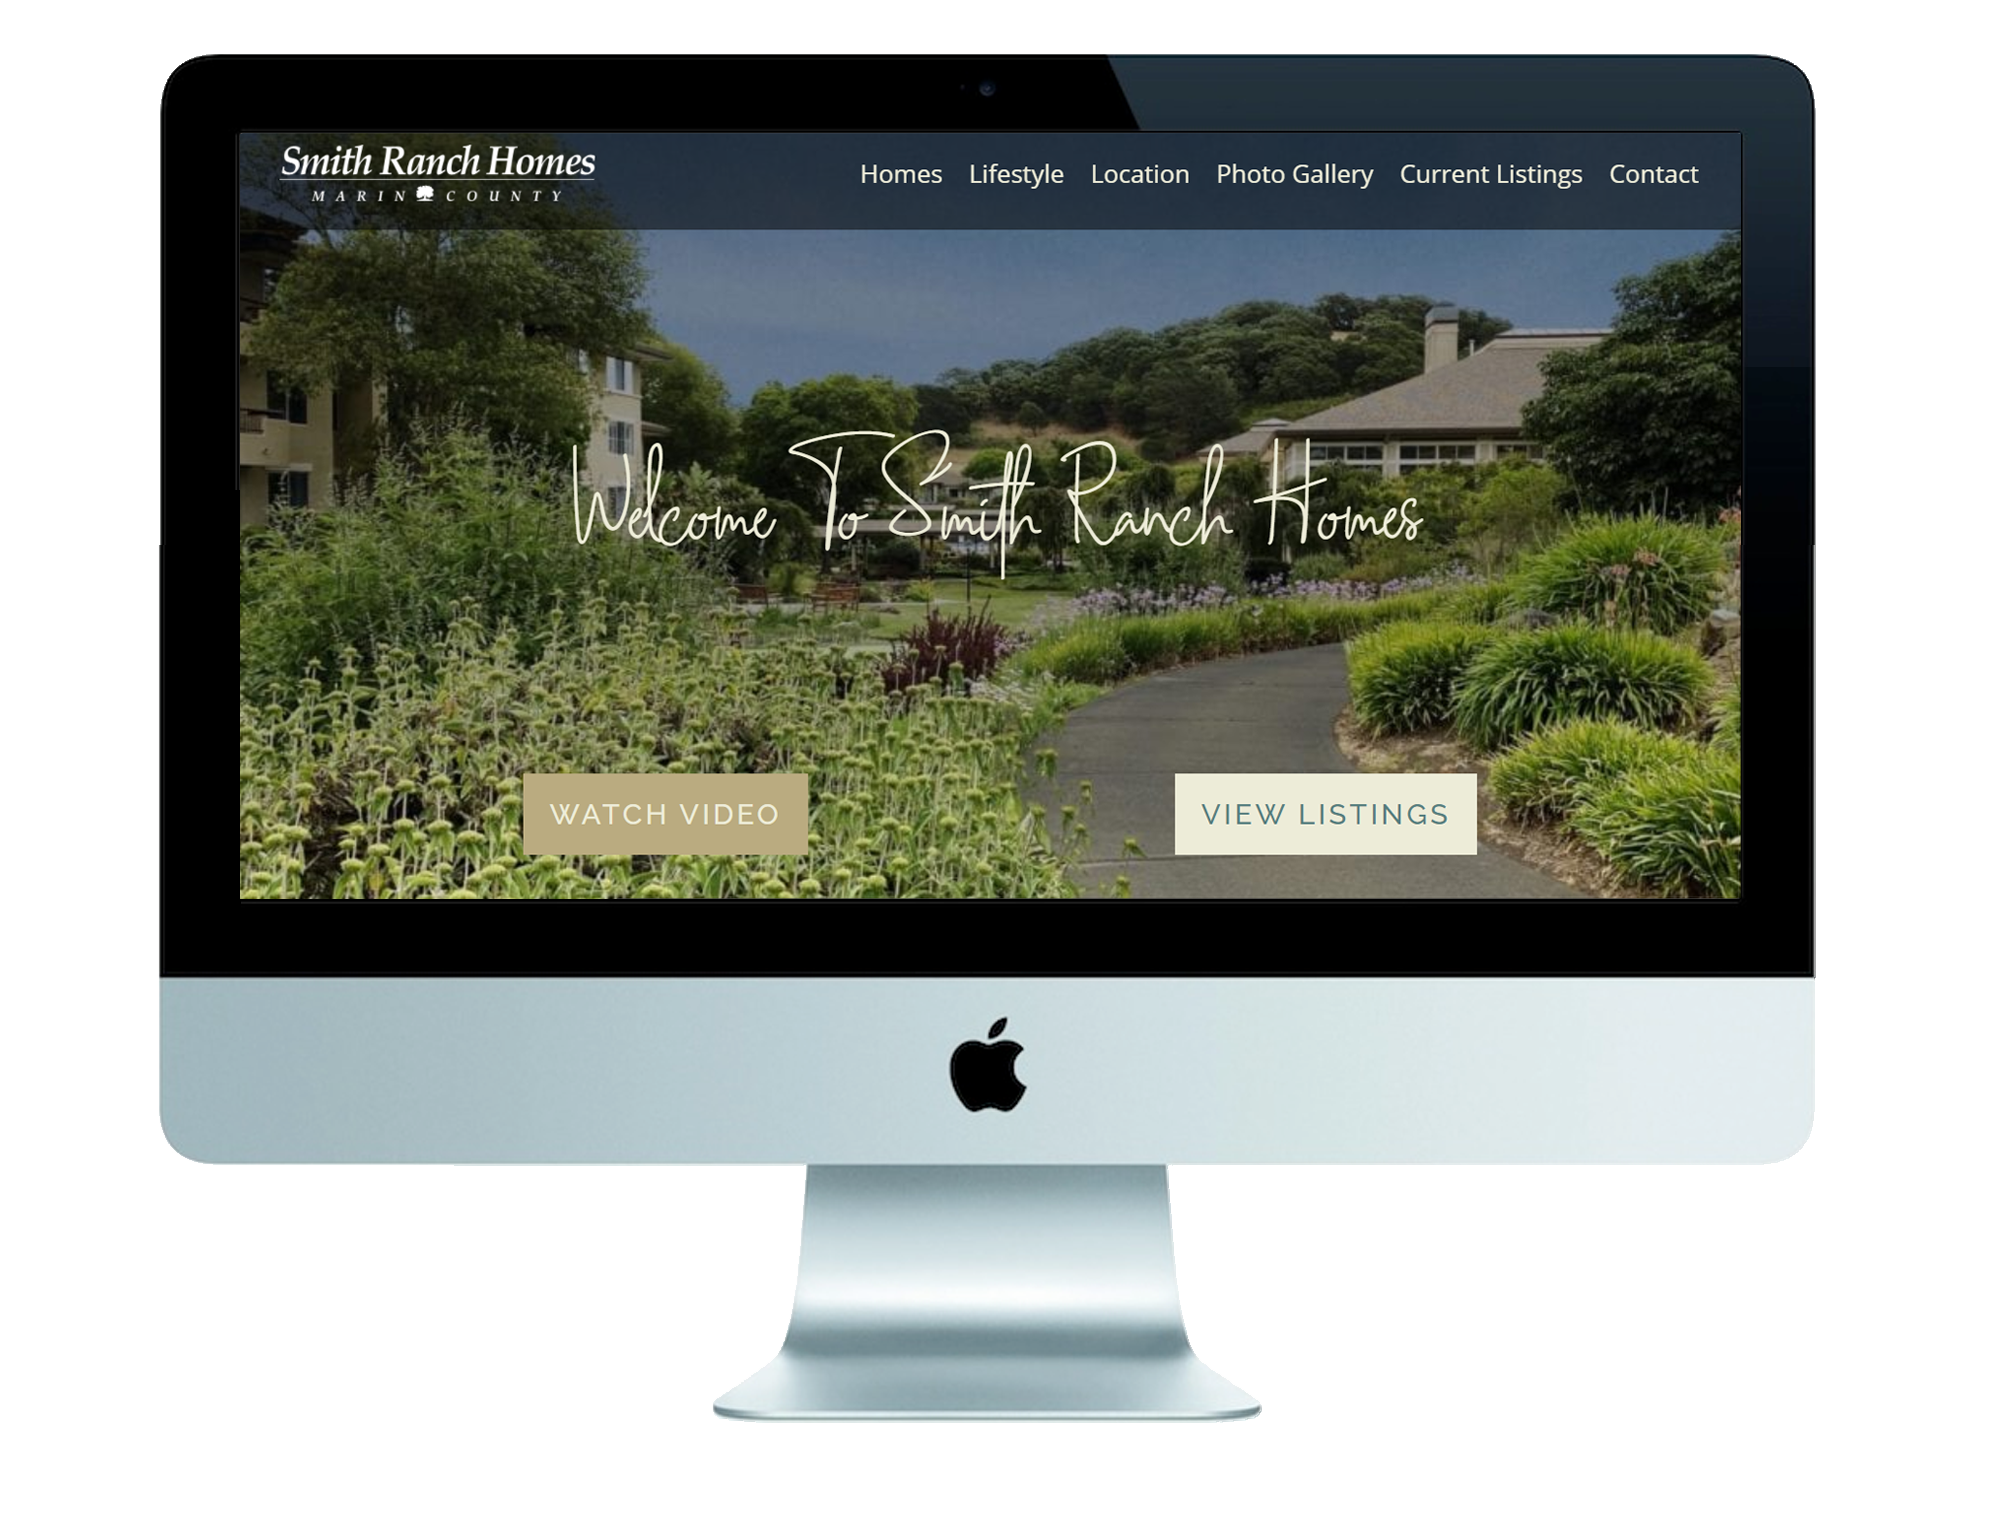 Future Bright Websites - Smith Ranch Homes